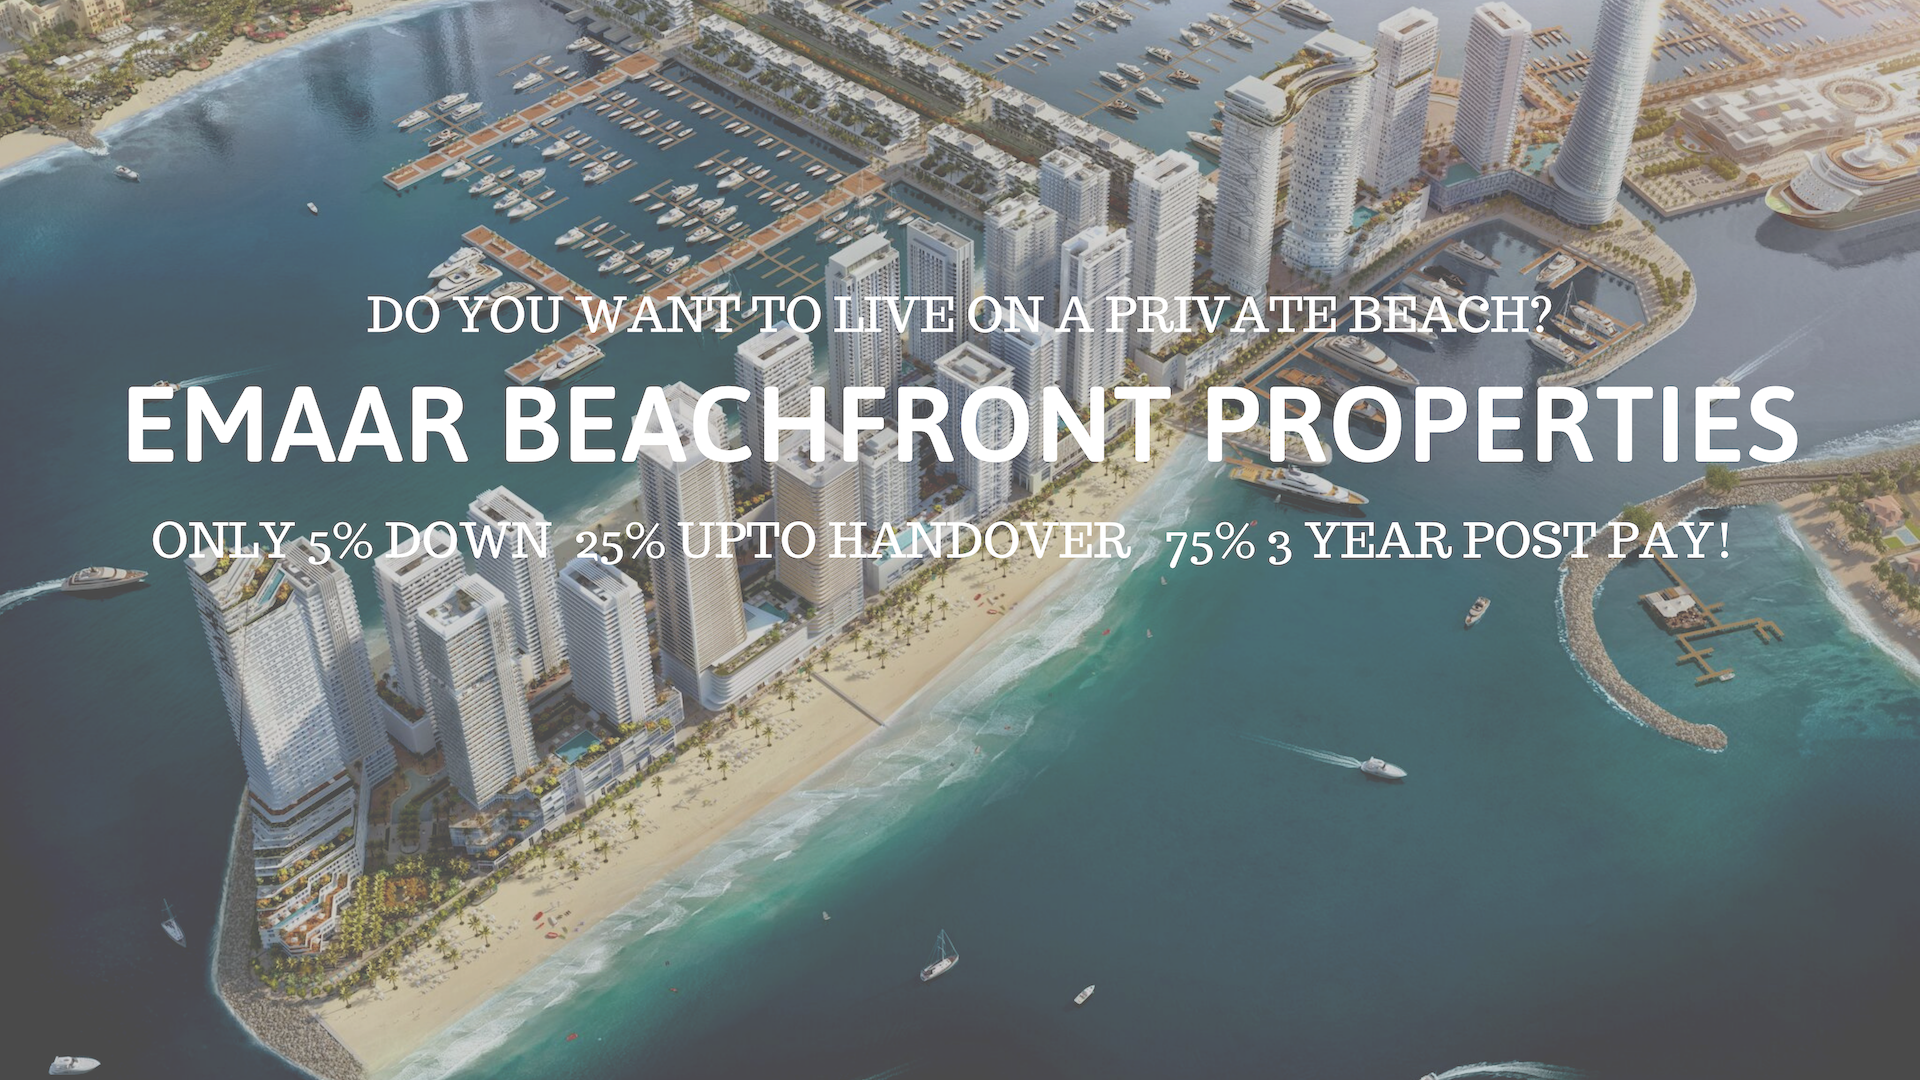 Emaar Beachfront offer on post pay-plan